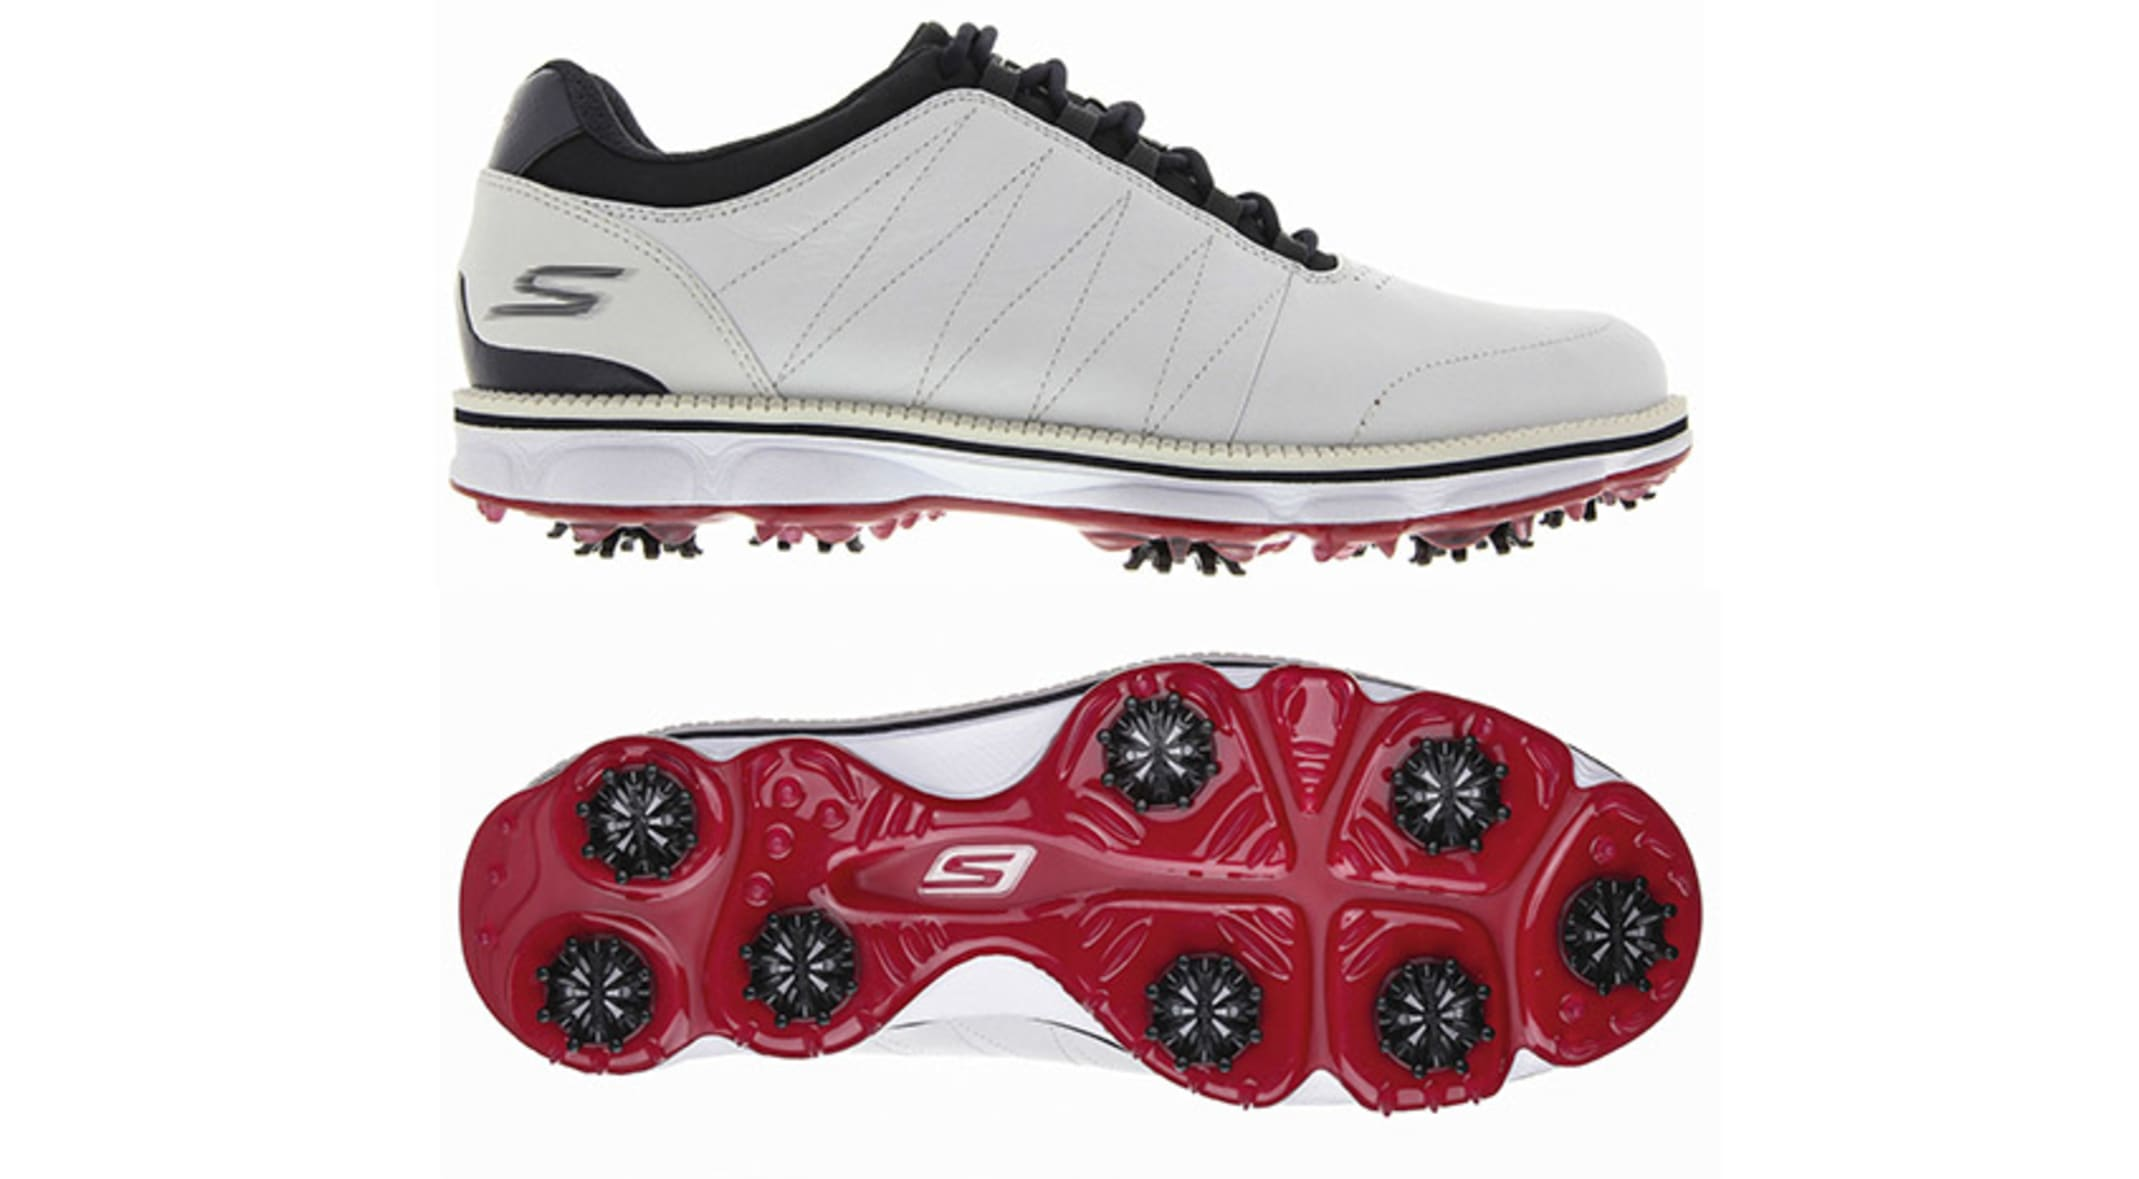 6a25e66bdfba Matt Kuchar s new signature Skechers GO GOLF Pro shoe is hitting store  shelves just in time